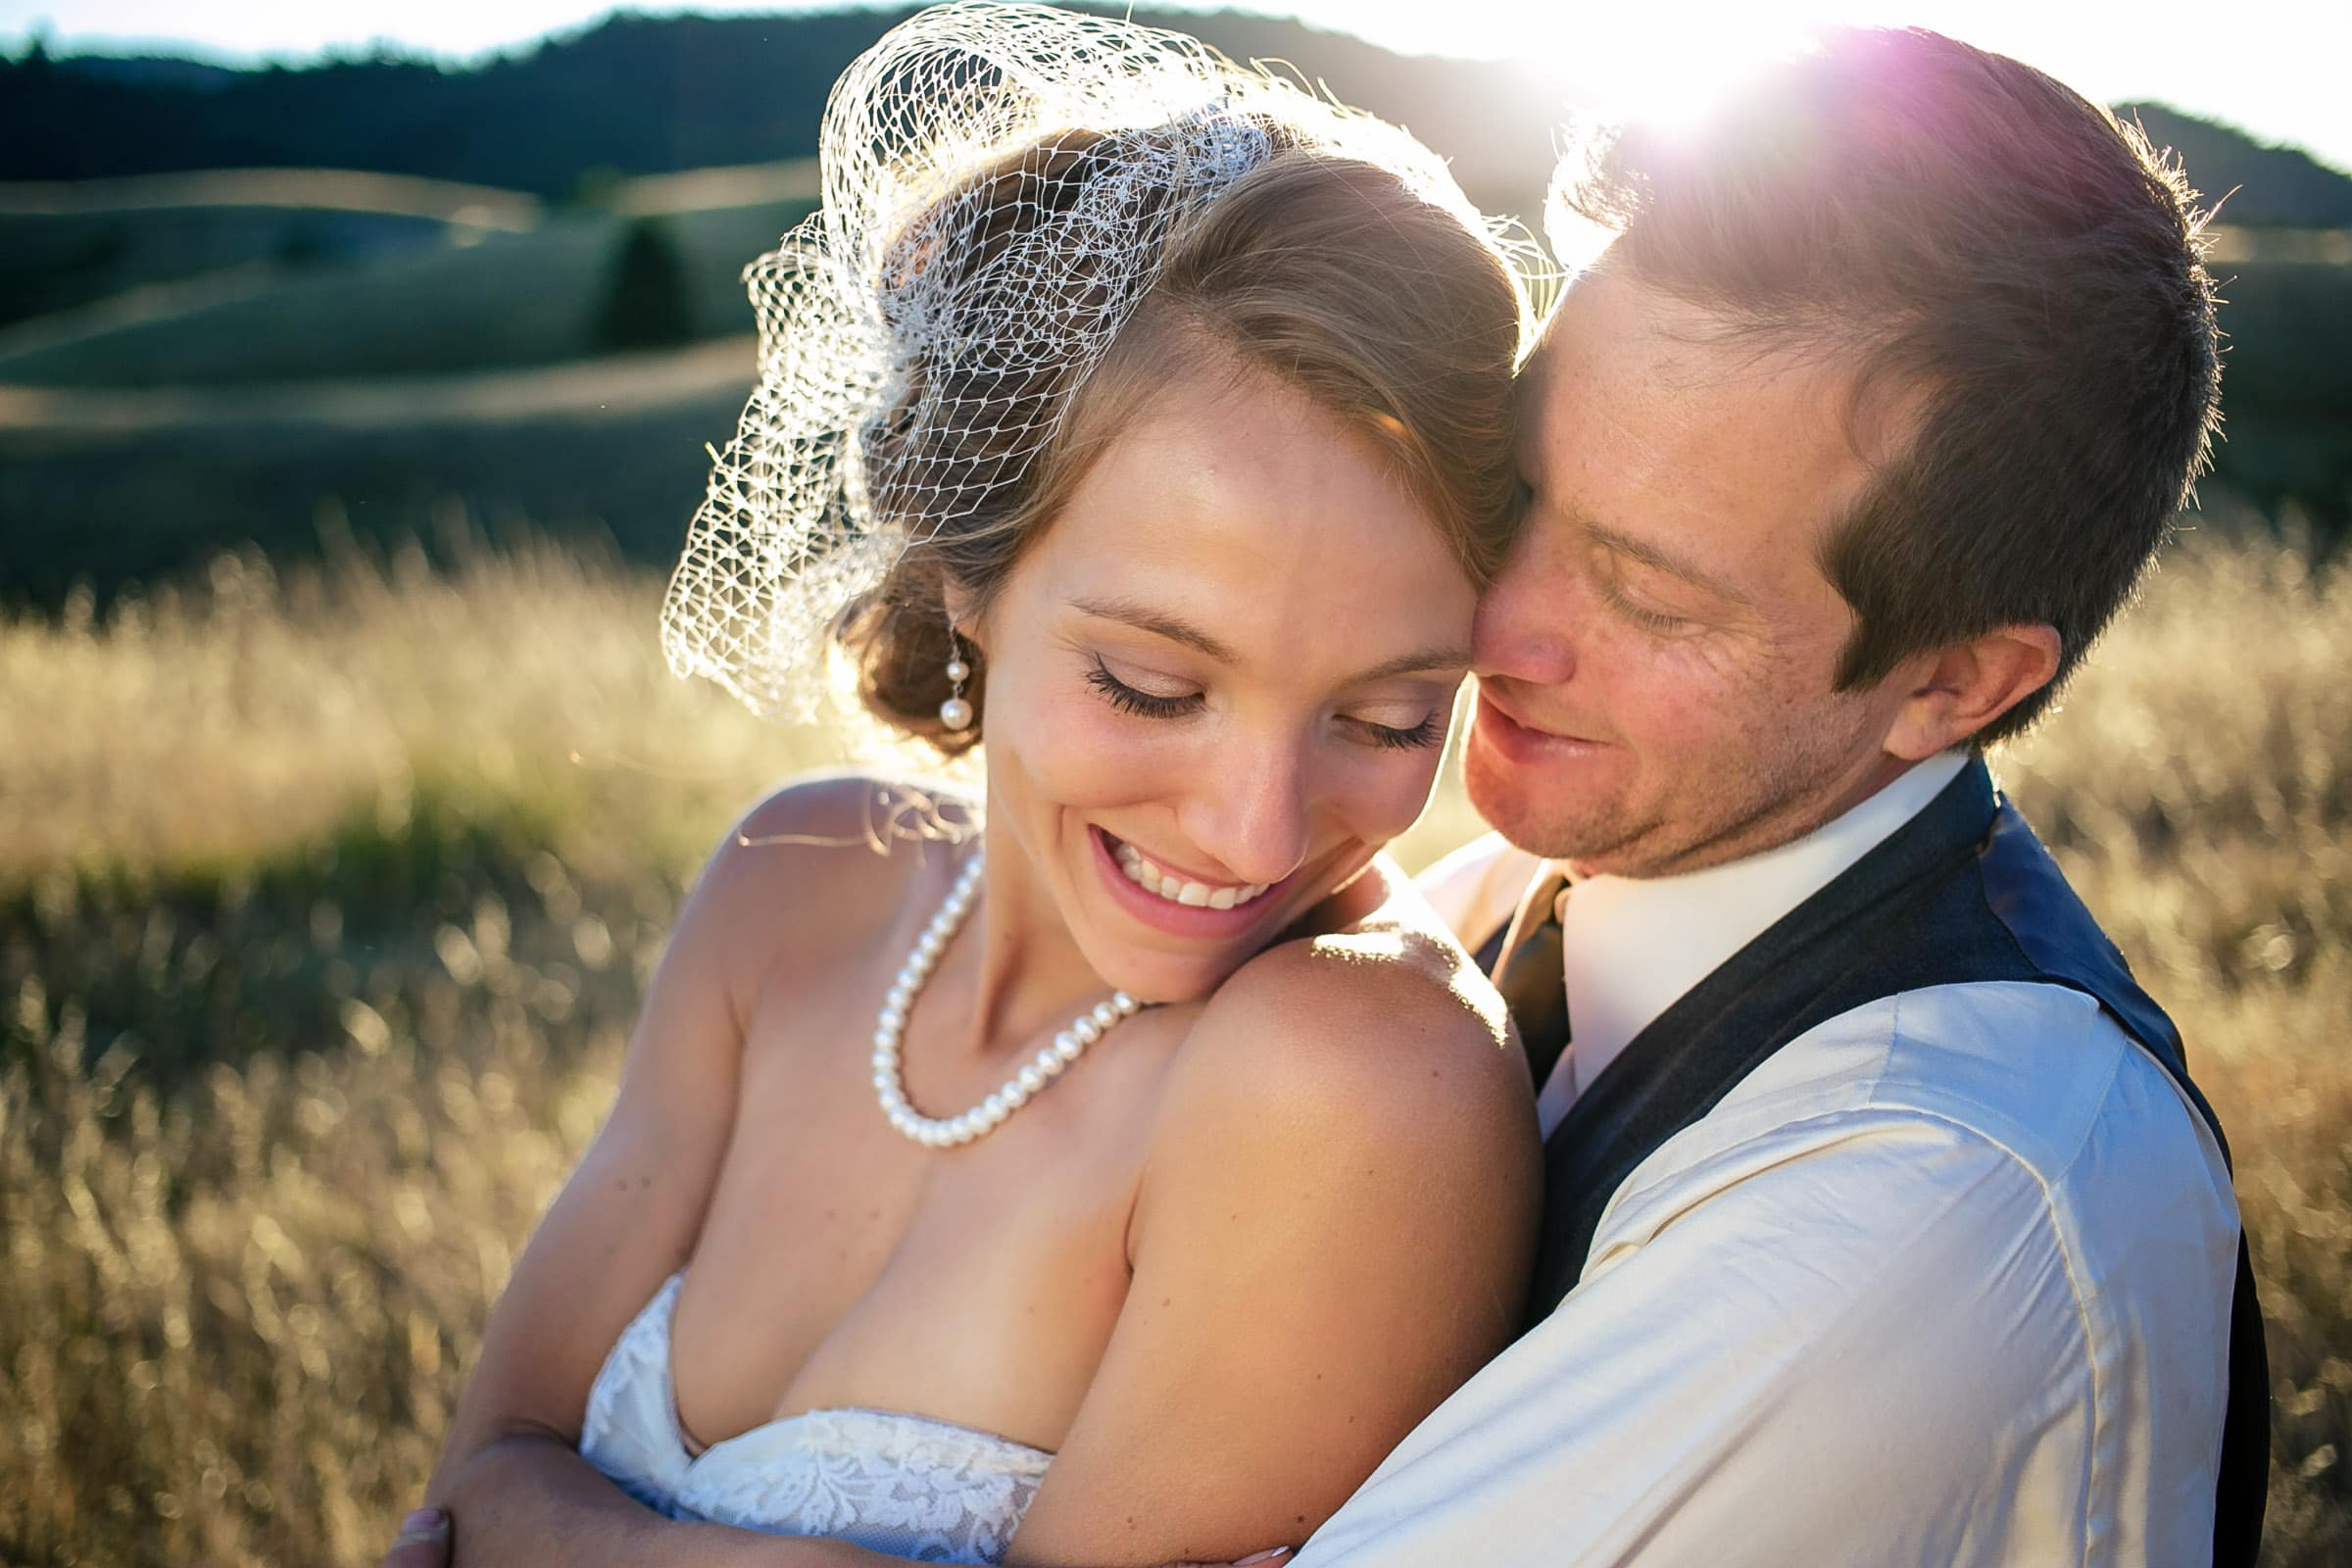 A close up intimate photo of a super happy and connected bride and groom during their Humboldt California wedding at Beginnings Briceland